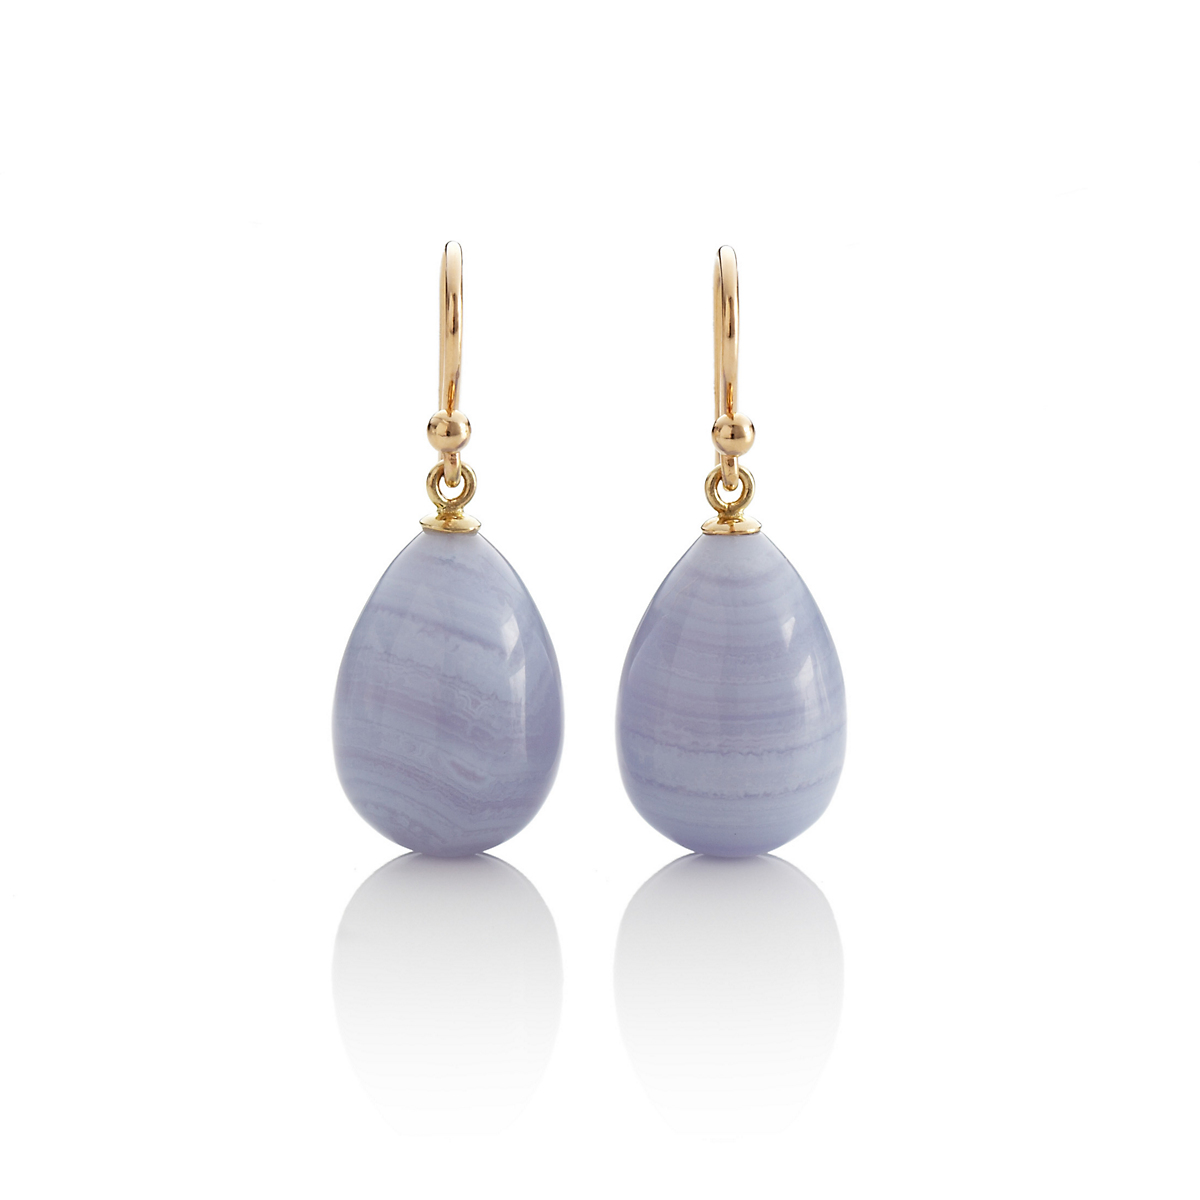 Gump's Blue Lace Agate & Gold Drop Earrings